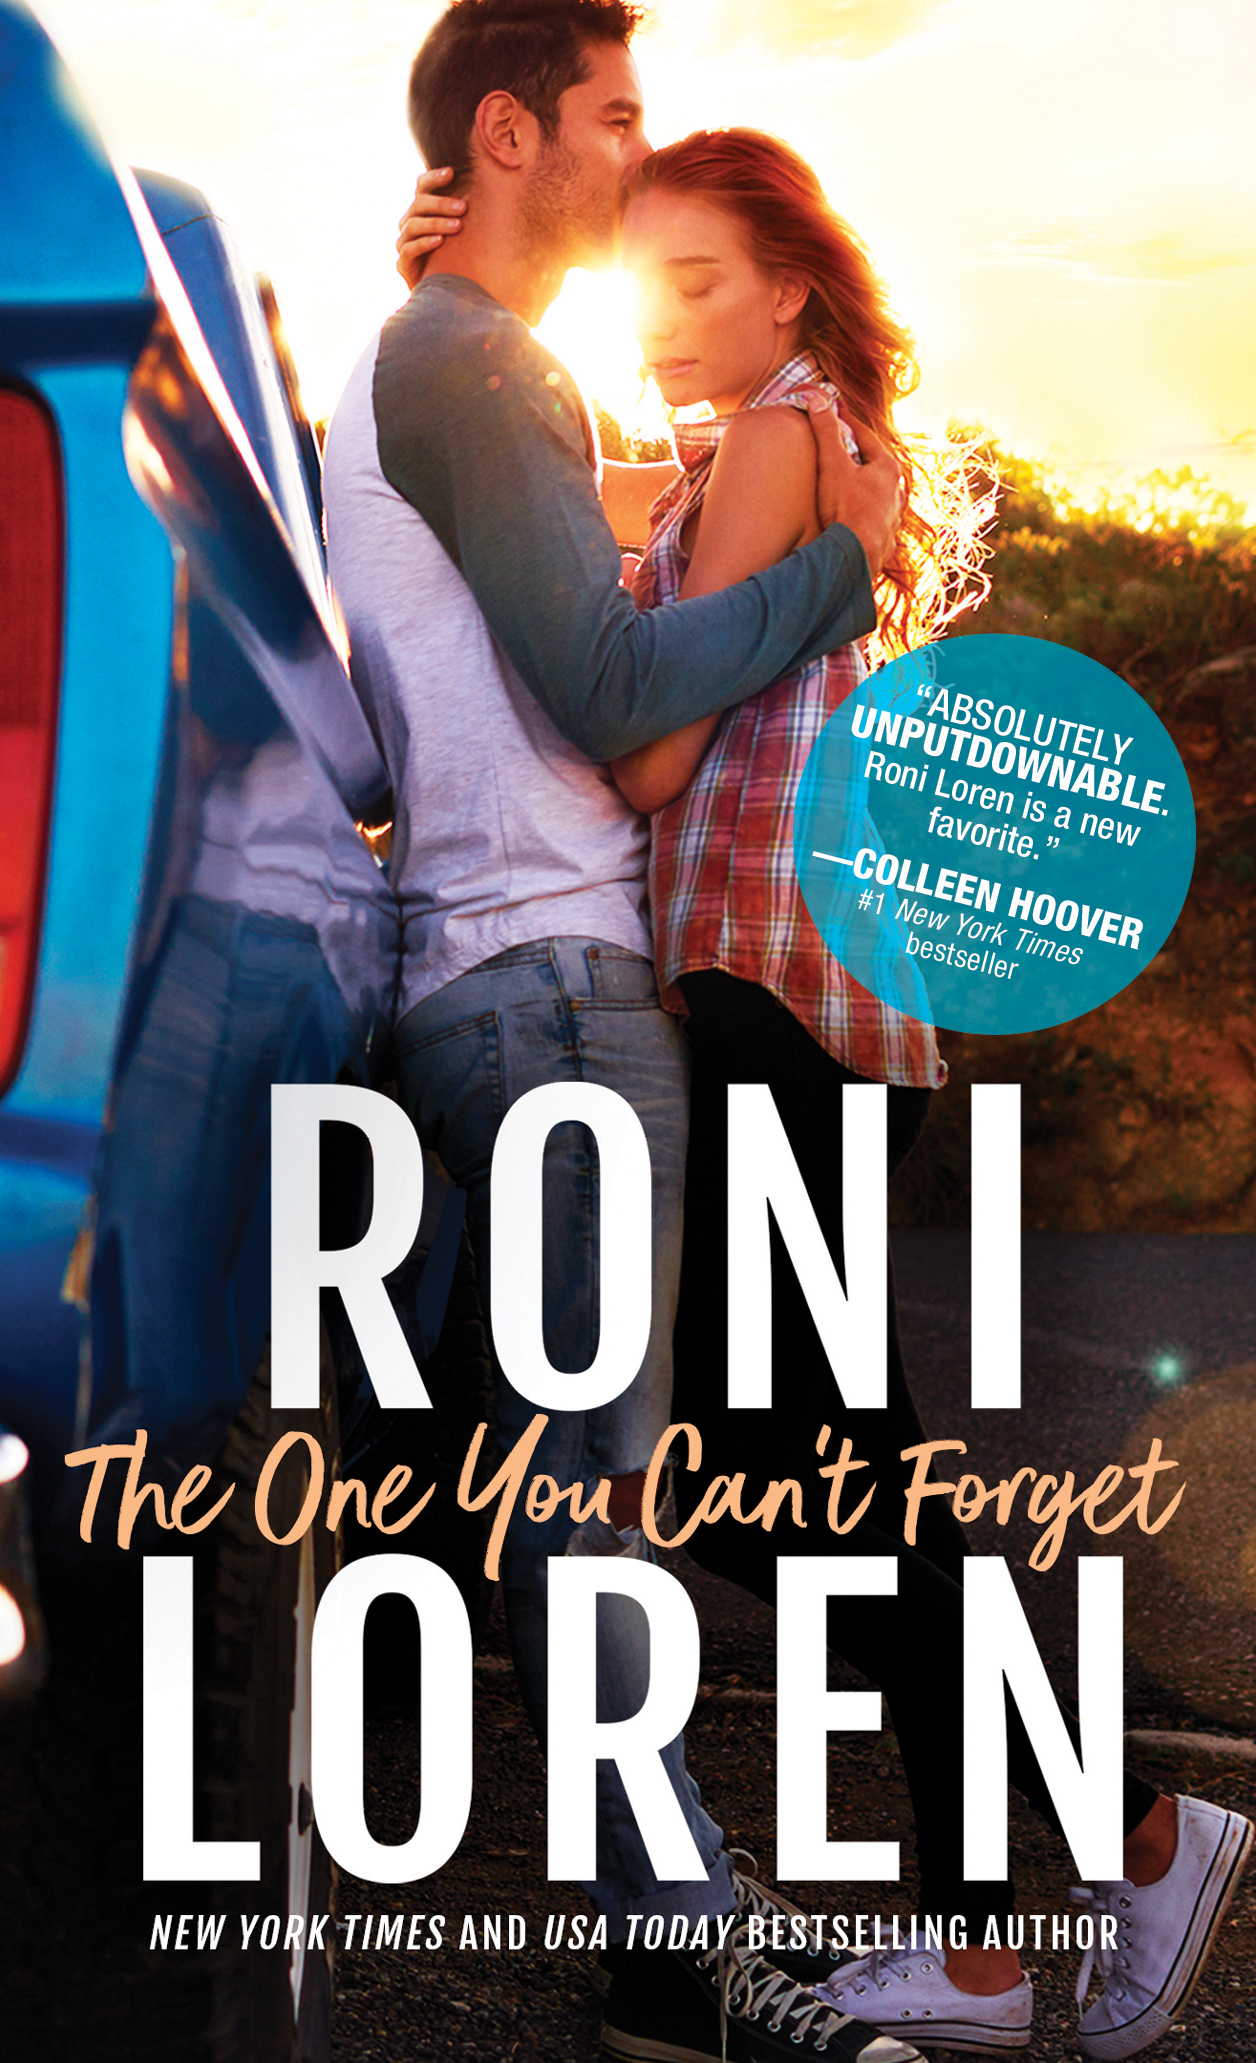 Spotlight & Excerpt: The One You Can't Forget by Roni Loren #BookReview